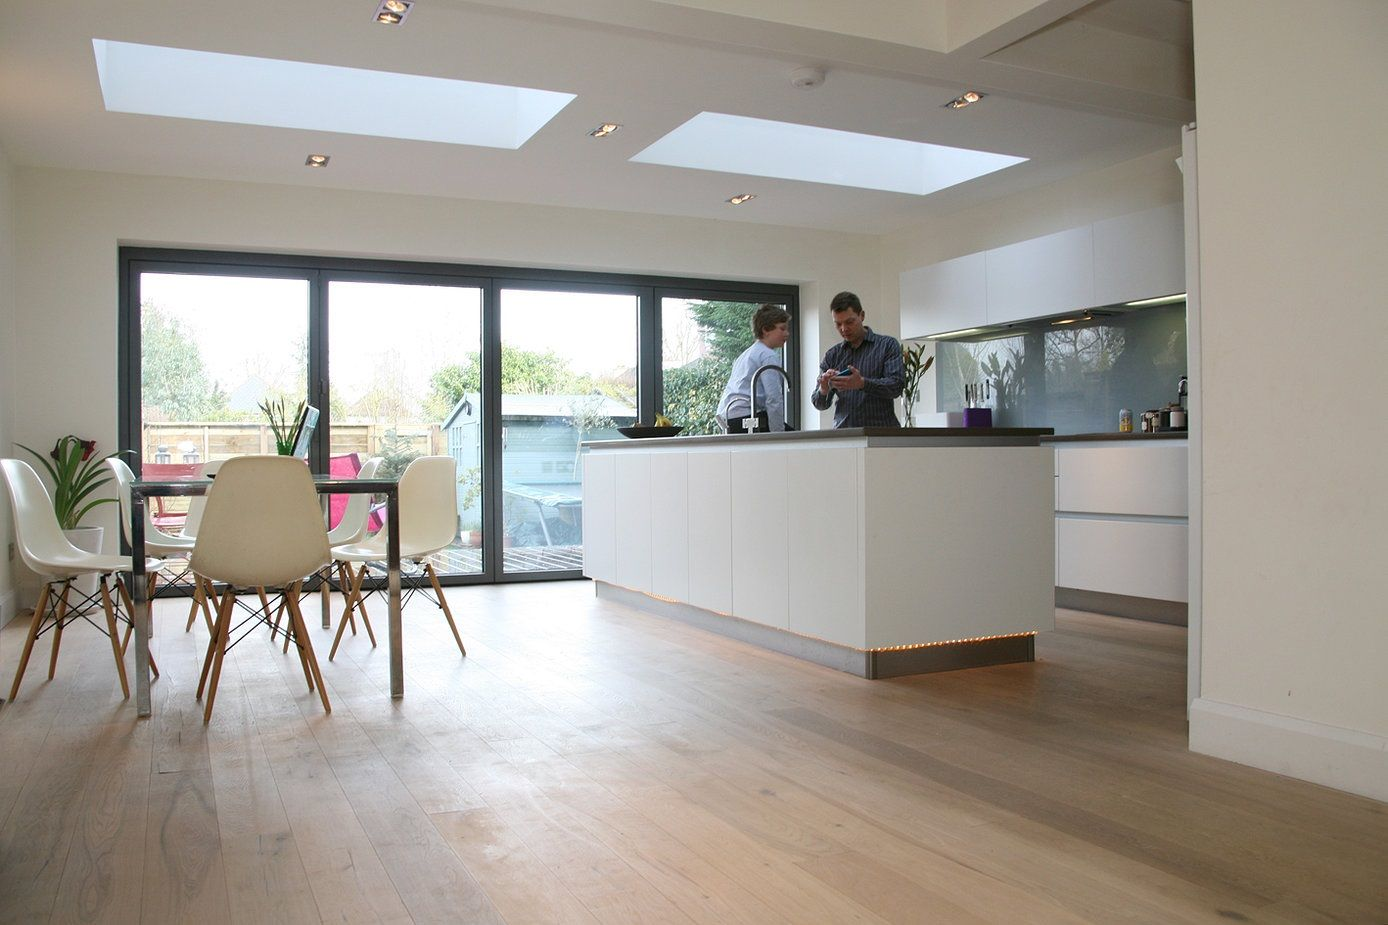 House extension ideas designs house extension photo for Room extension plans